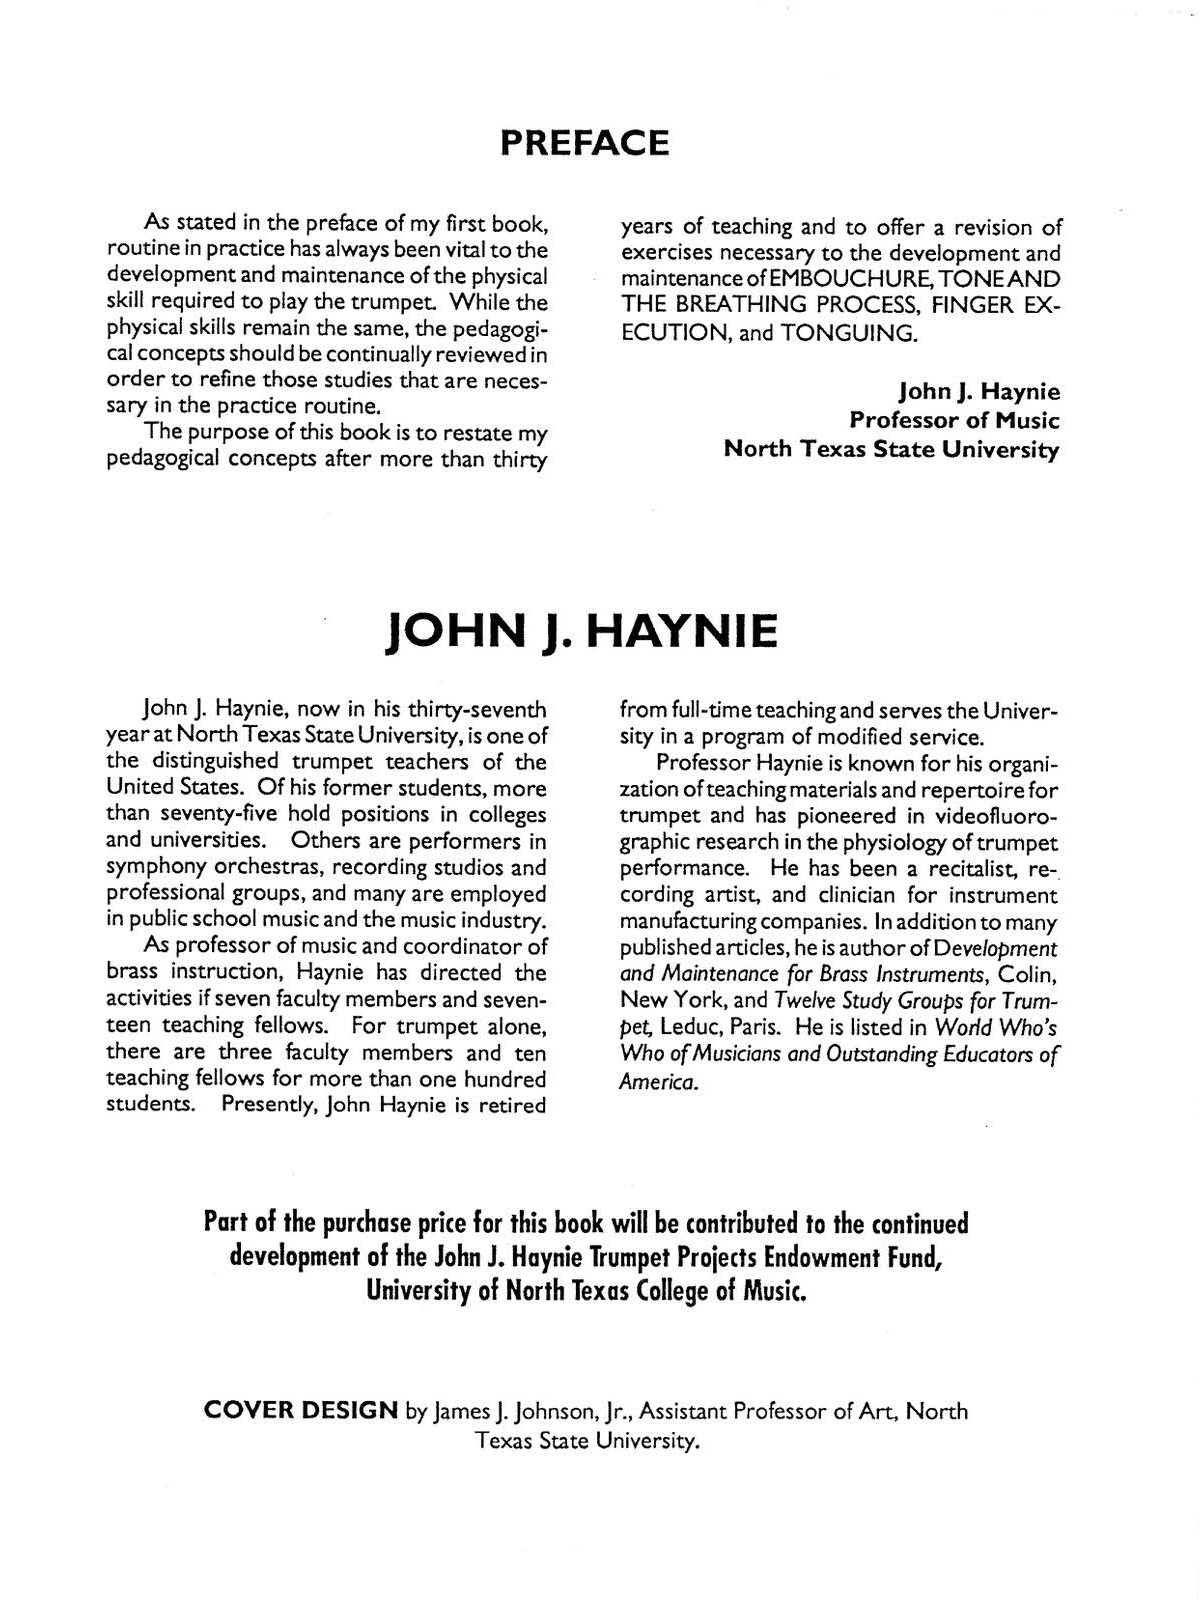 Haynie, High Notes & Low Notes PDF